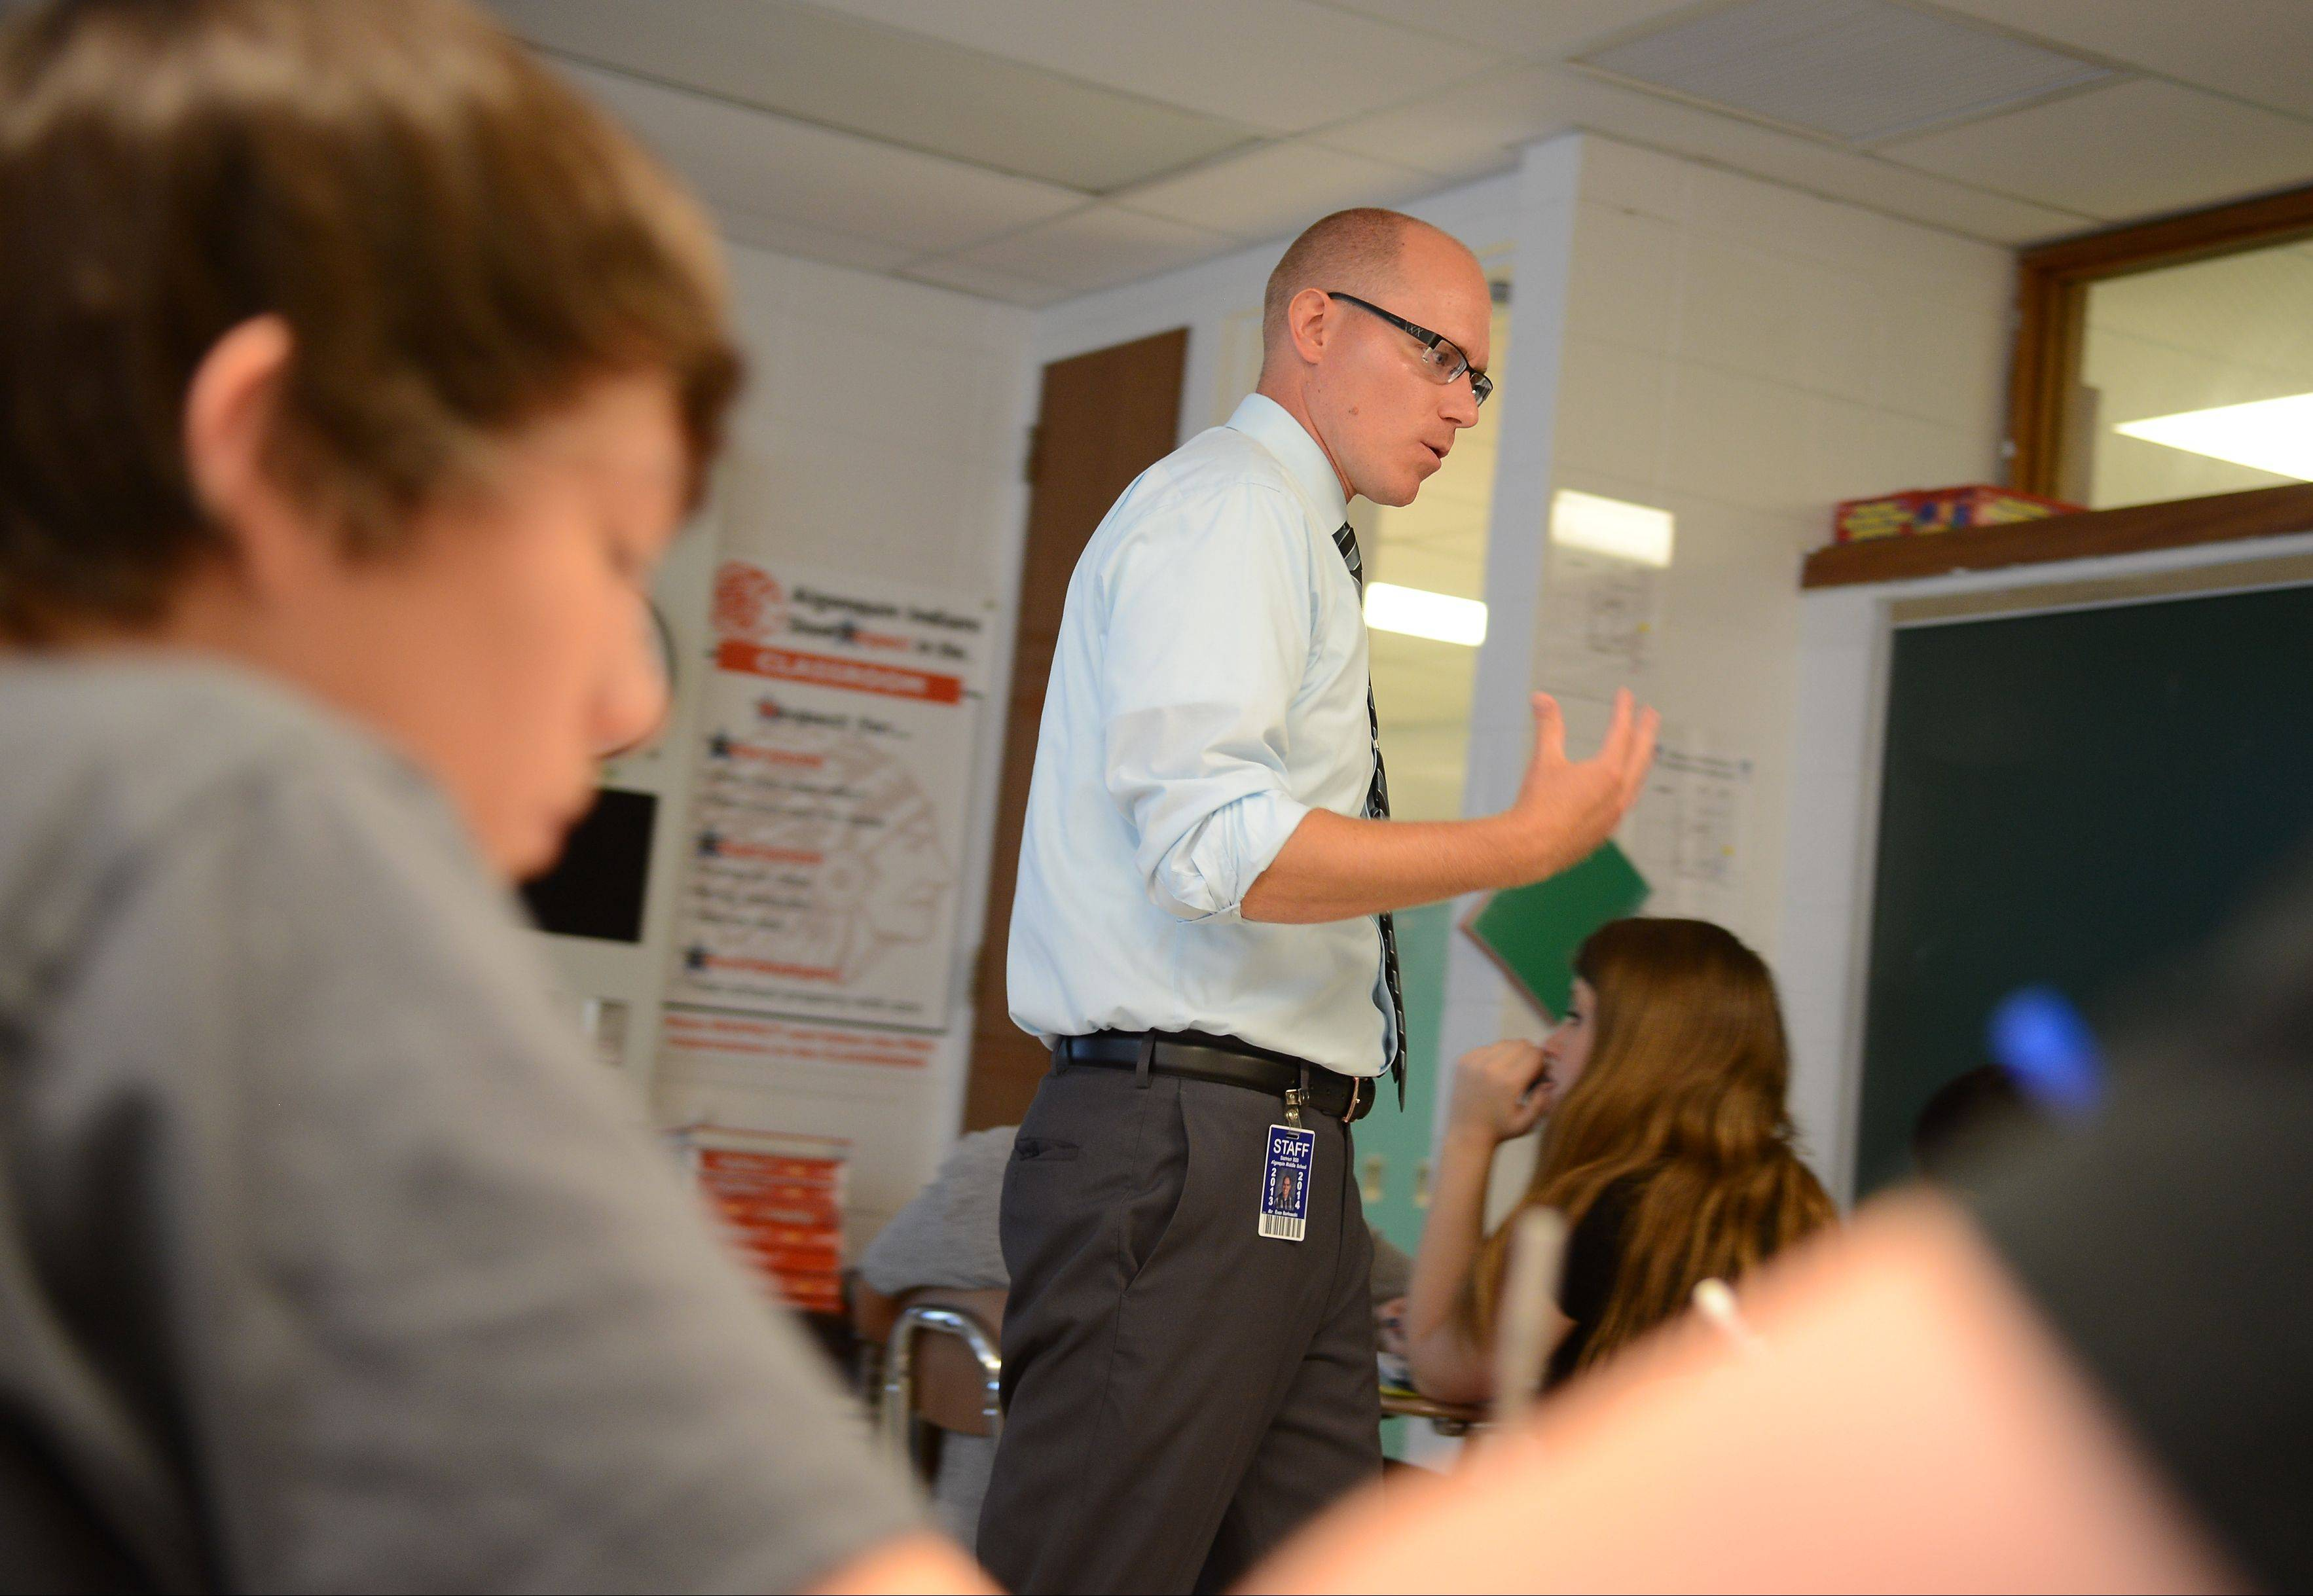 Algonquin Middle School math teacher Evan Borkowski helps students think about how math applies to real-world situations. That shift is a key to teaching based on the new Common Core State Standards.